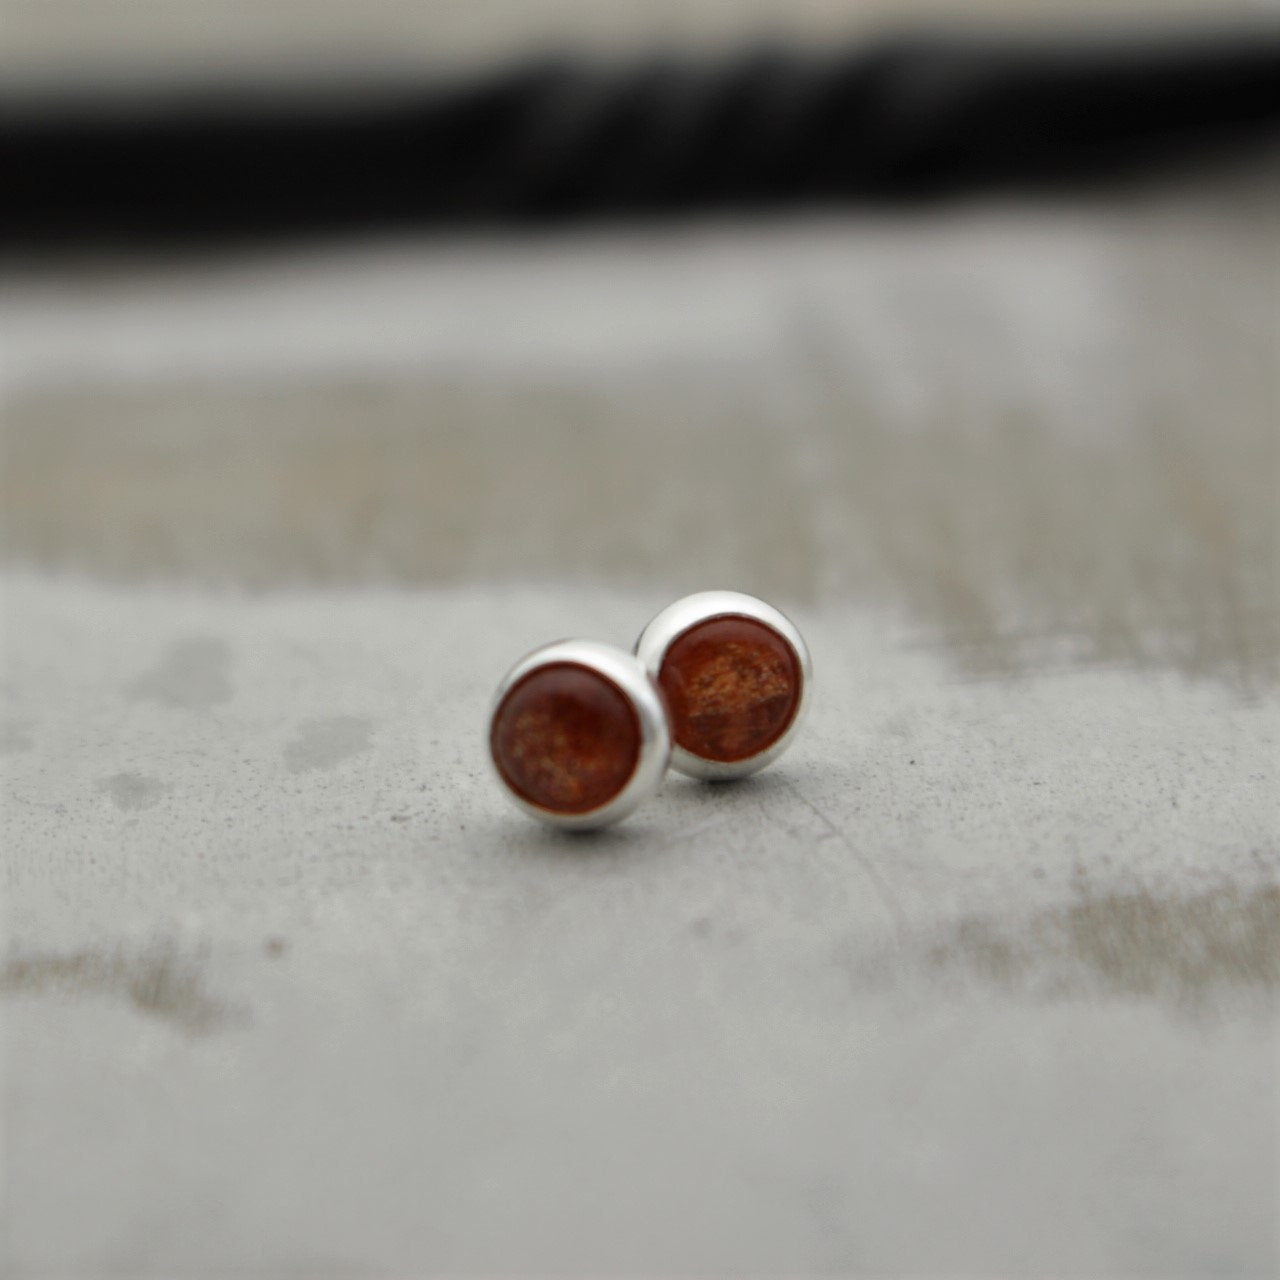 5mm Sunstone Studs Earrings